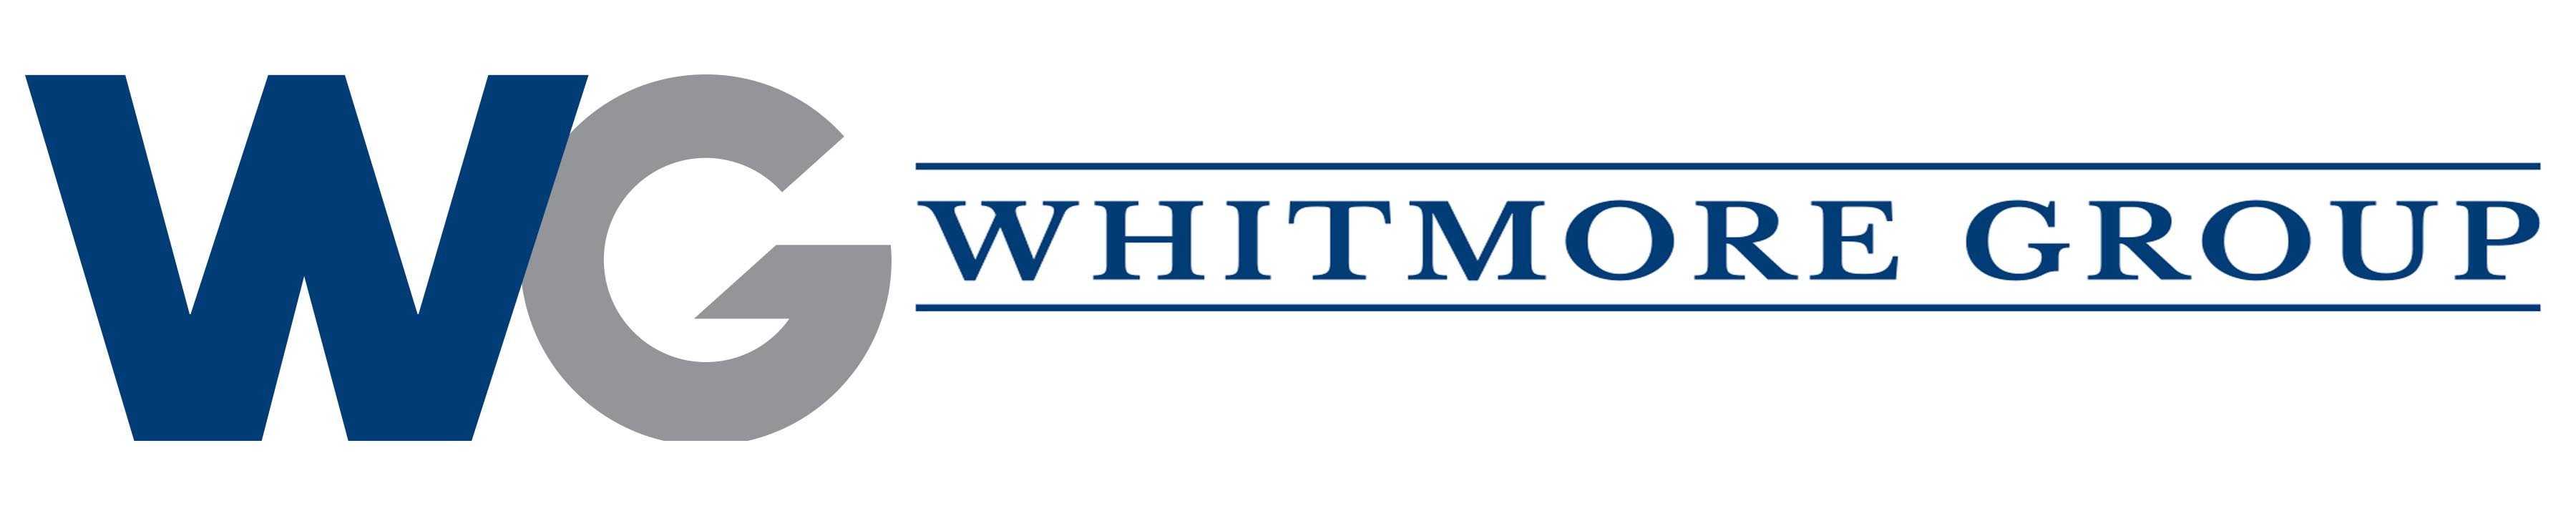 Visit http://www.whitmoregroup.com/